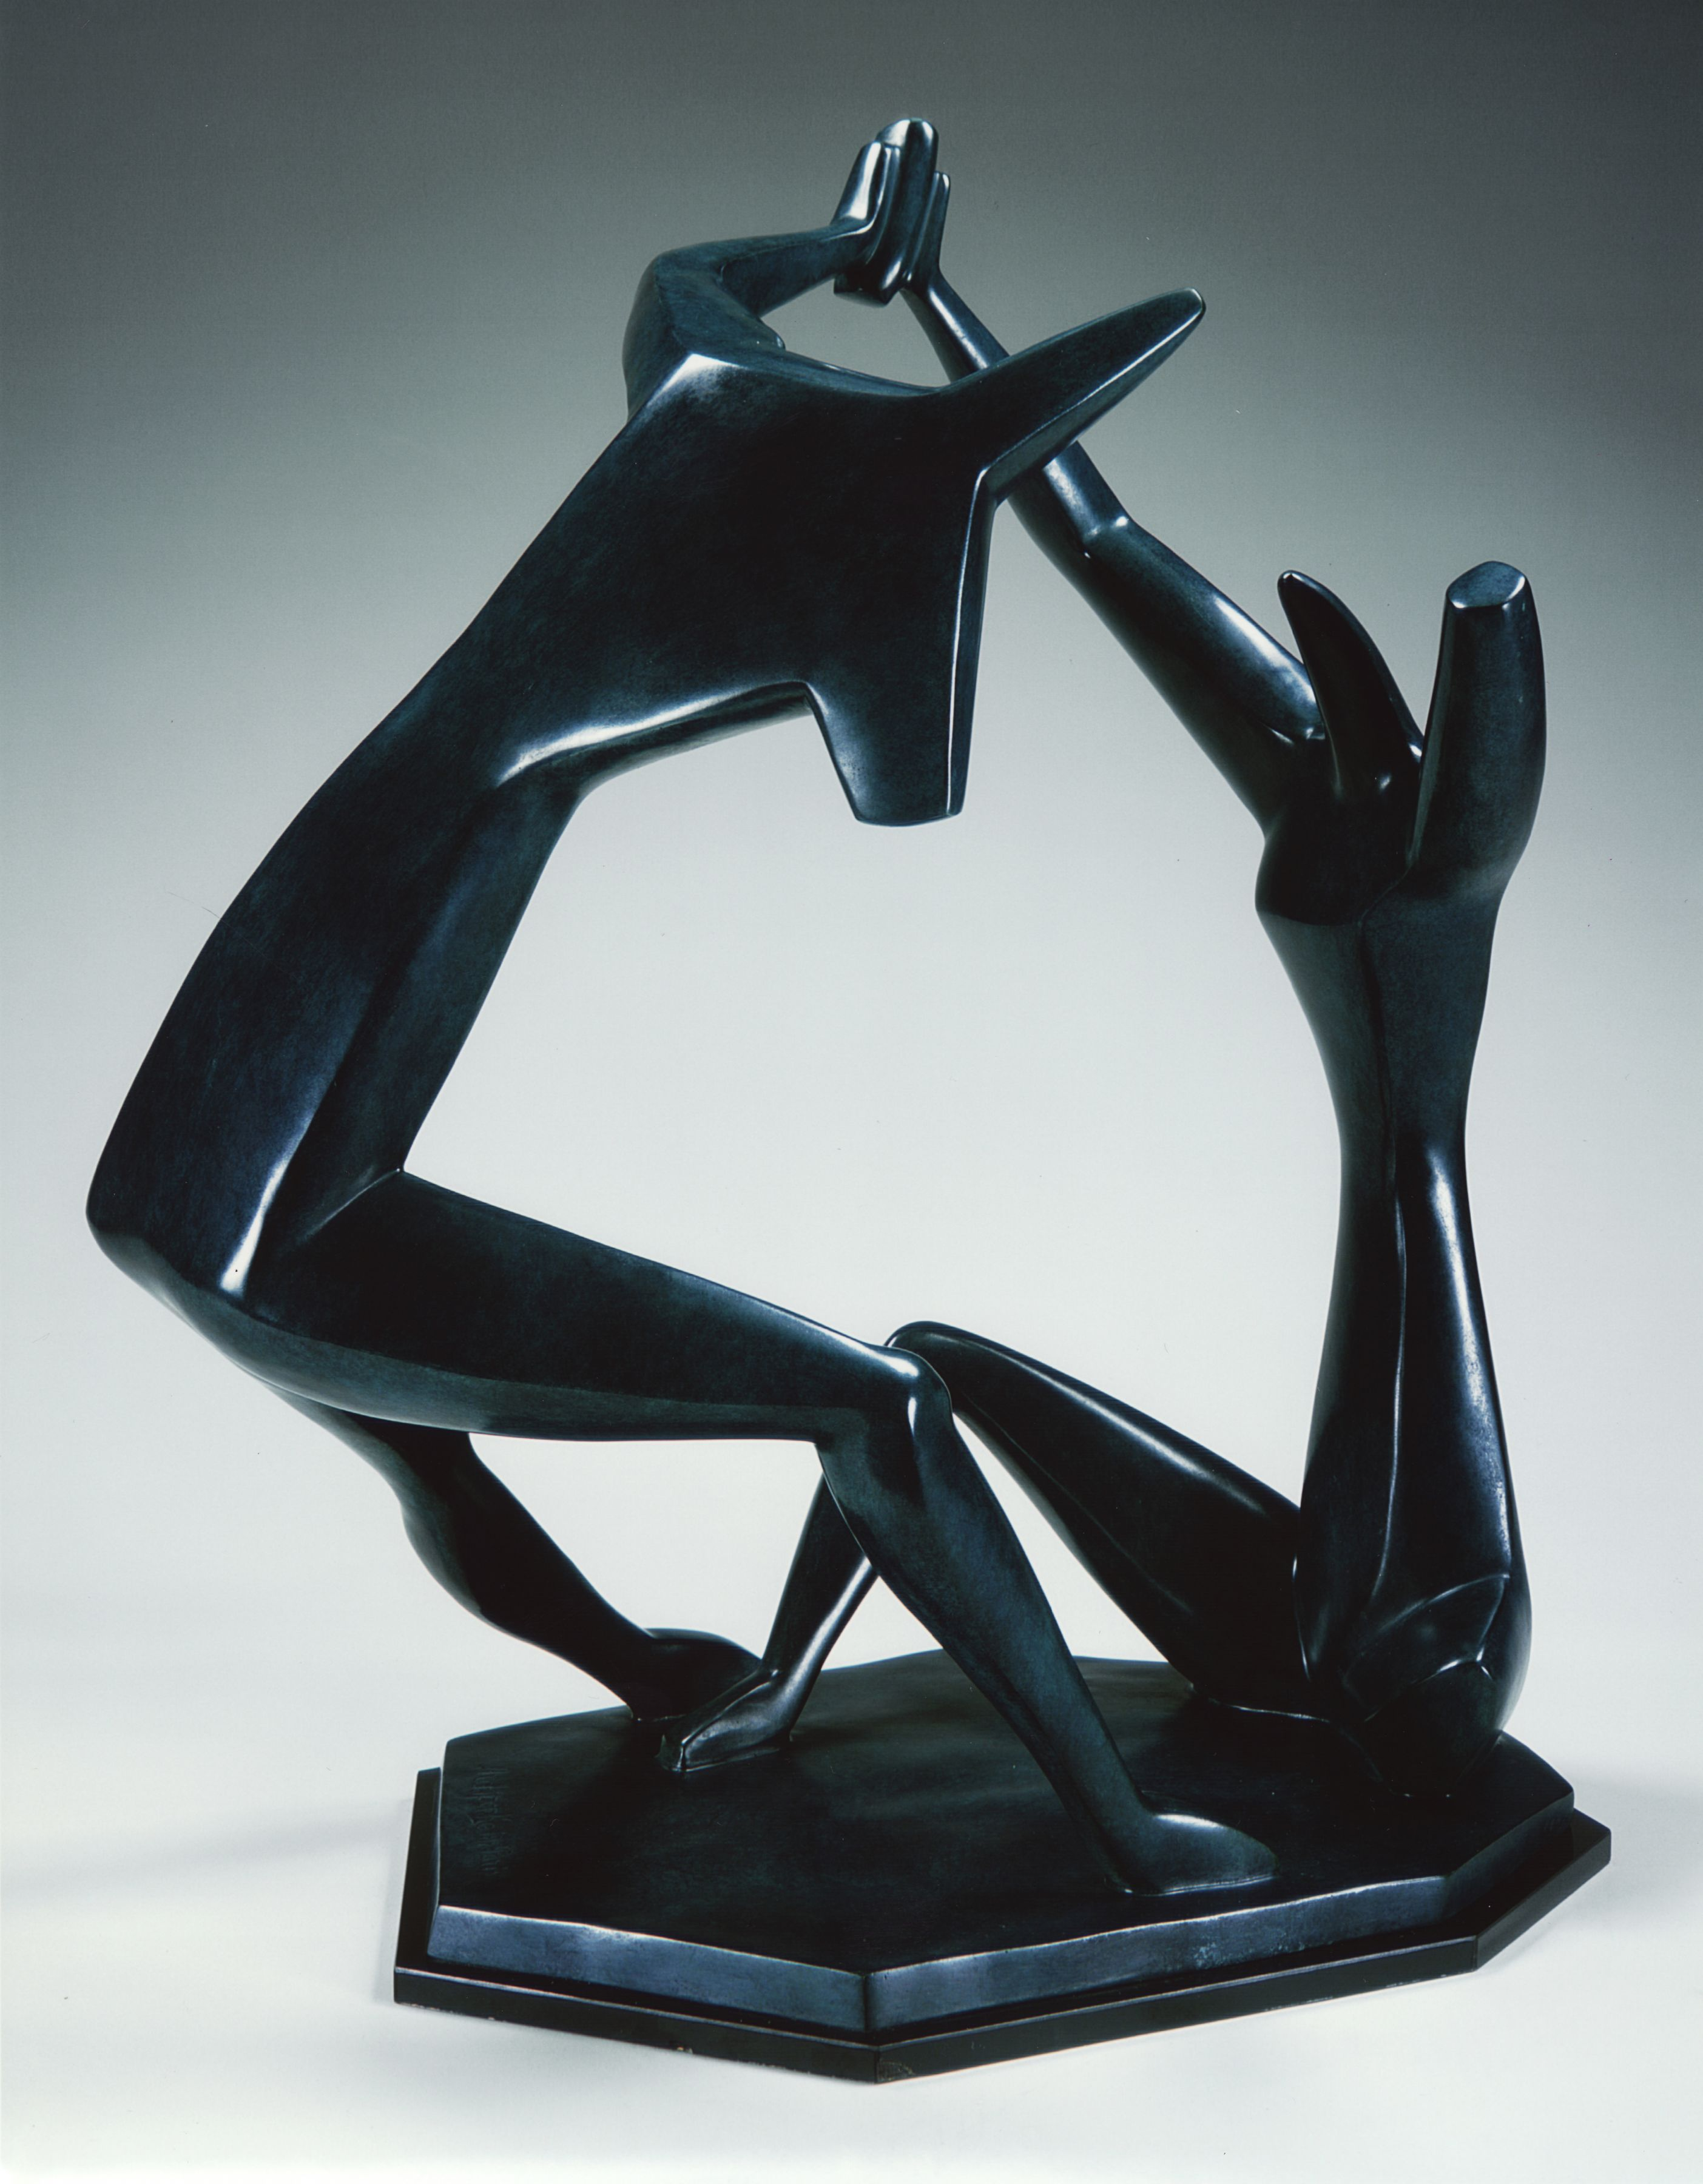 Alexander Archipenko, La Danse (Dance), 1912, cast in 1964, bronze, blue patina, 23 5/8 H x 18 1/4 W x 16 1/2 D inches, posthumous edition of 4